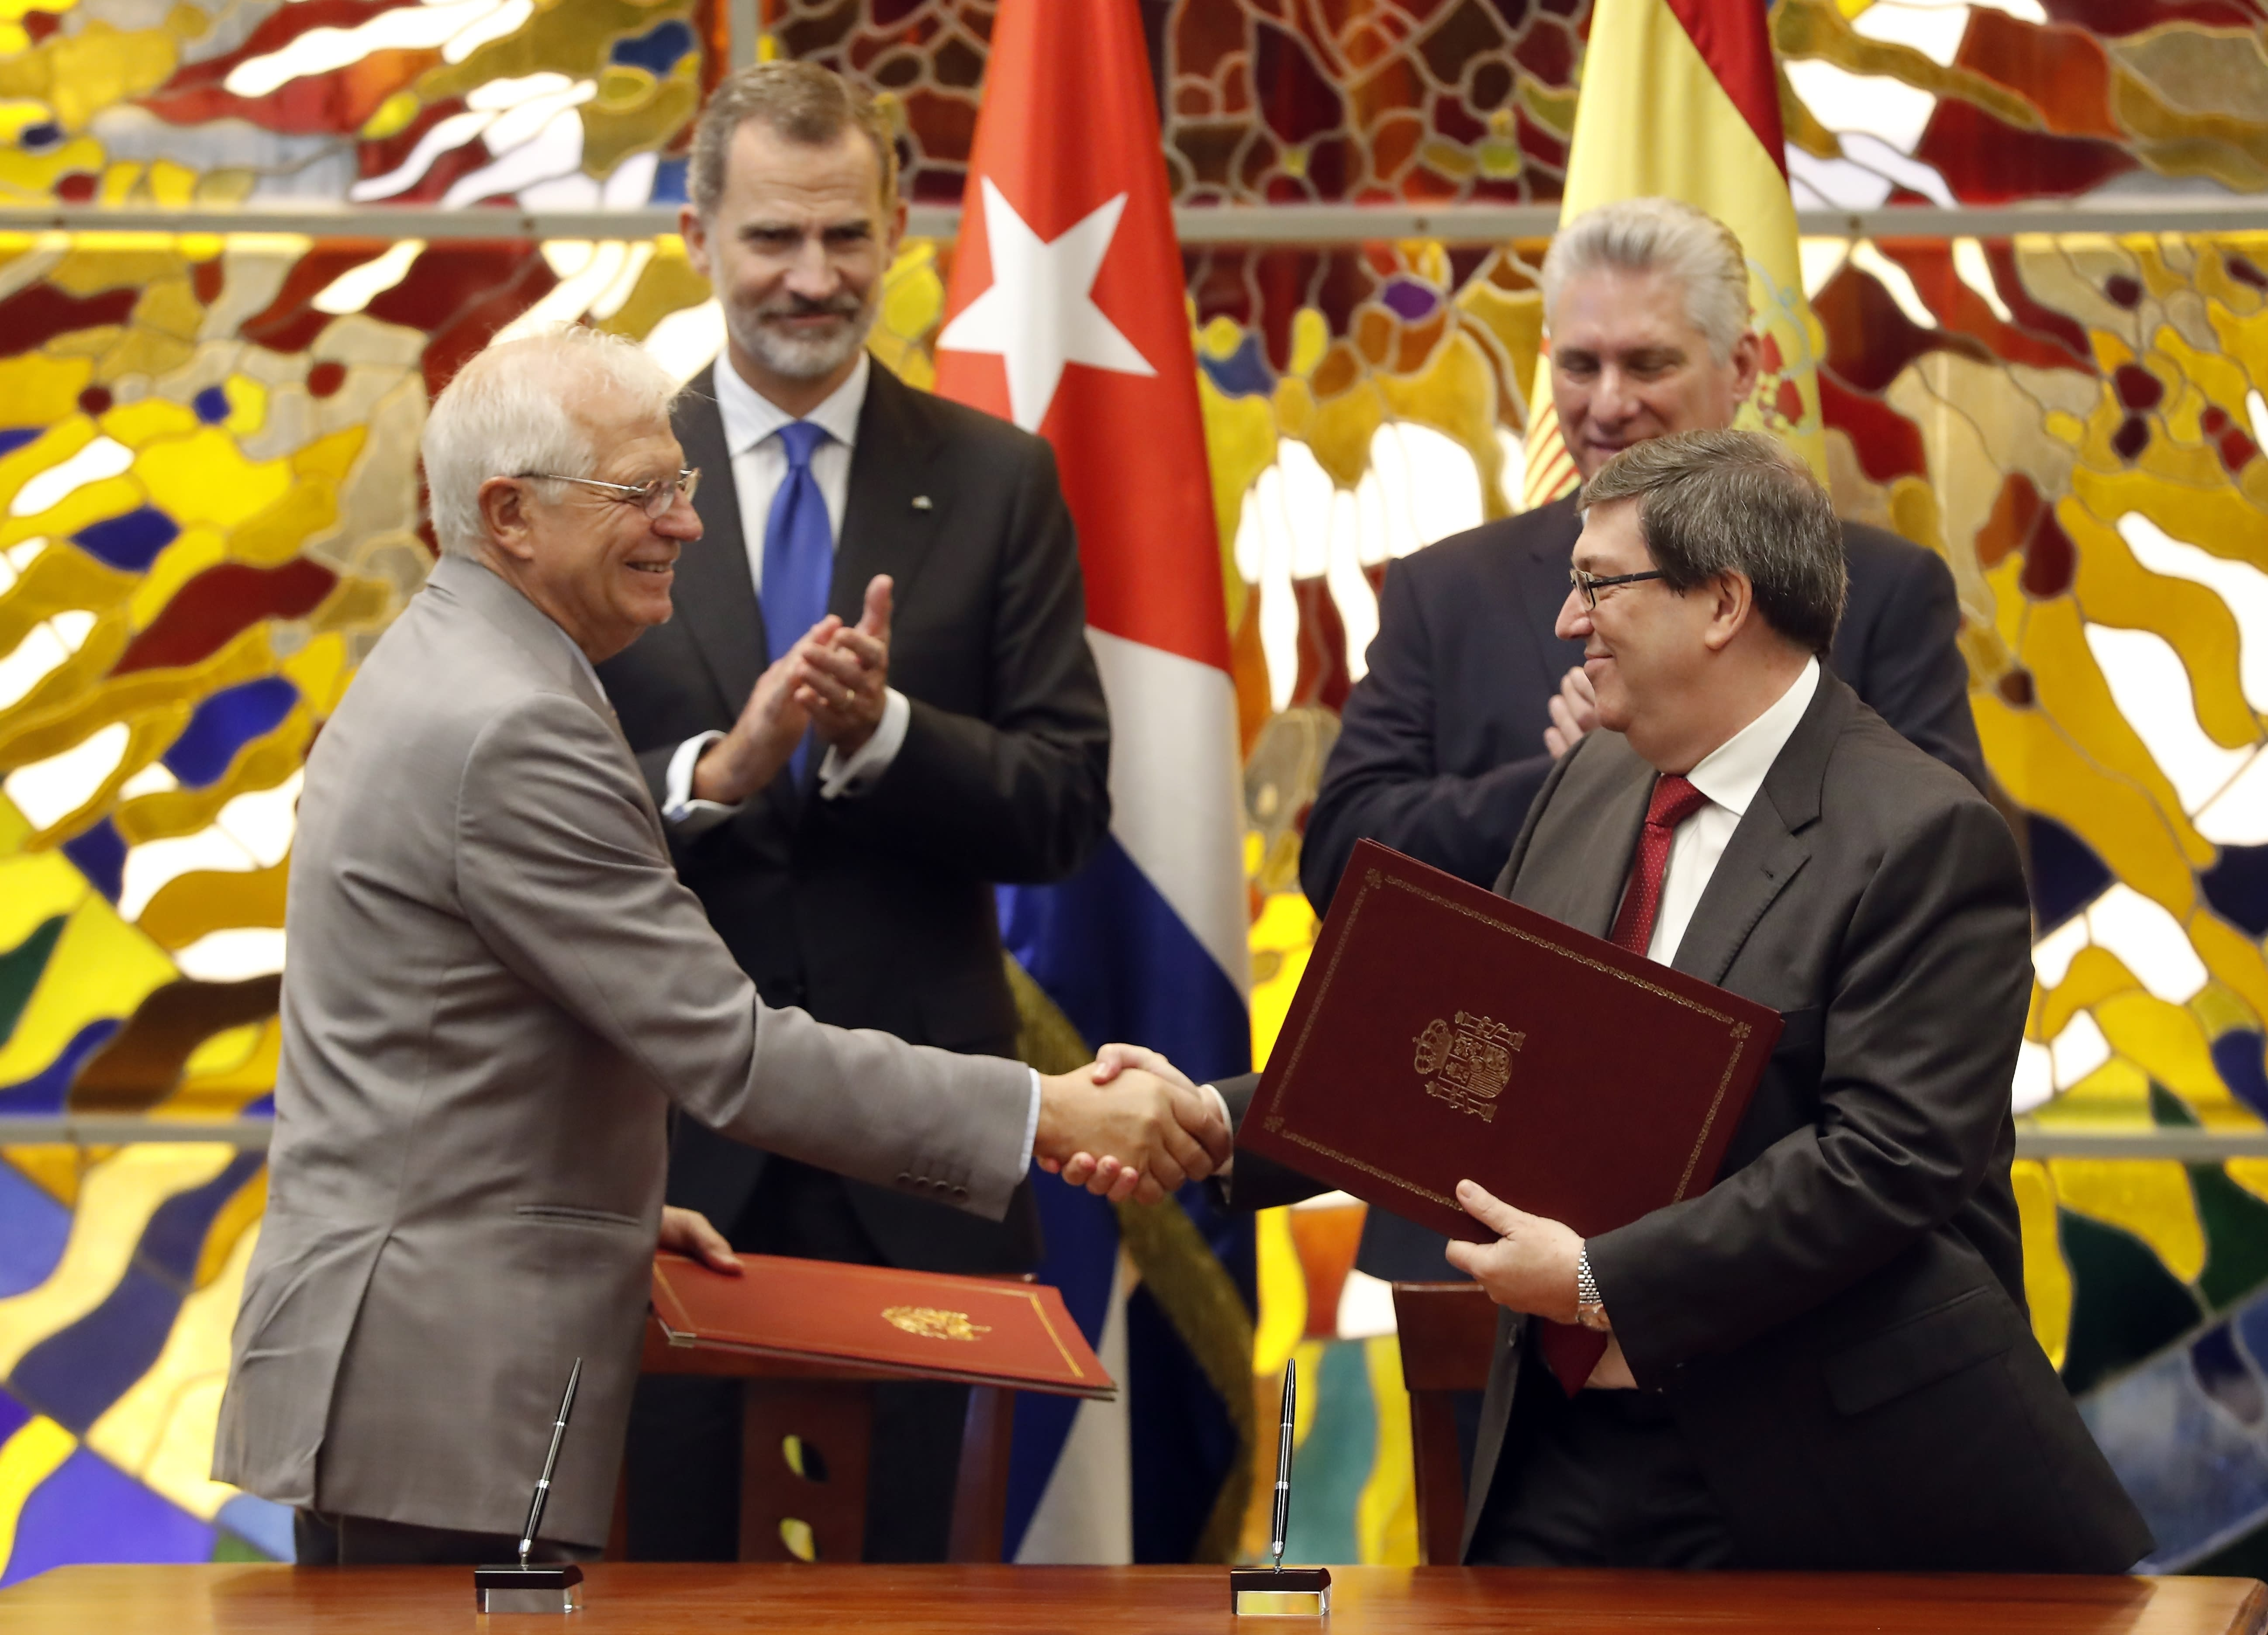 Spain's Foreign Minister Josep Borrell, left, and Cuba's foreign Minister Bruno Rodriguez Parrilla shake hands after signing an agreement while Spain's King Felipe VI, second left, and Cuba's President Miguel Diaz-Canel look on, at Revolution Palace in Havana, Cuba, Tuesday, Nov. 12, 2019. (Ernesto Mastrascusa/Pool photo via AP)